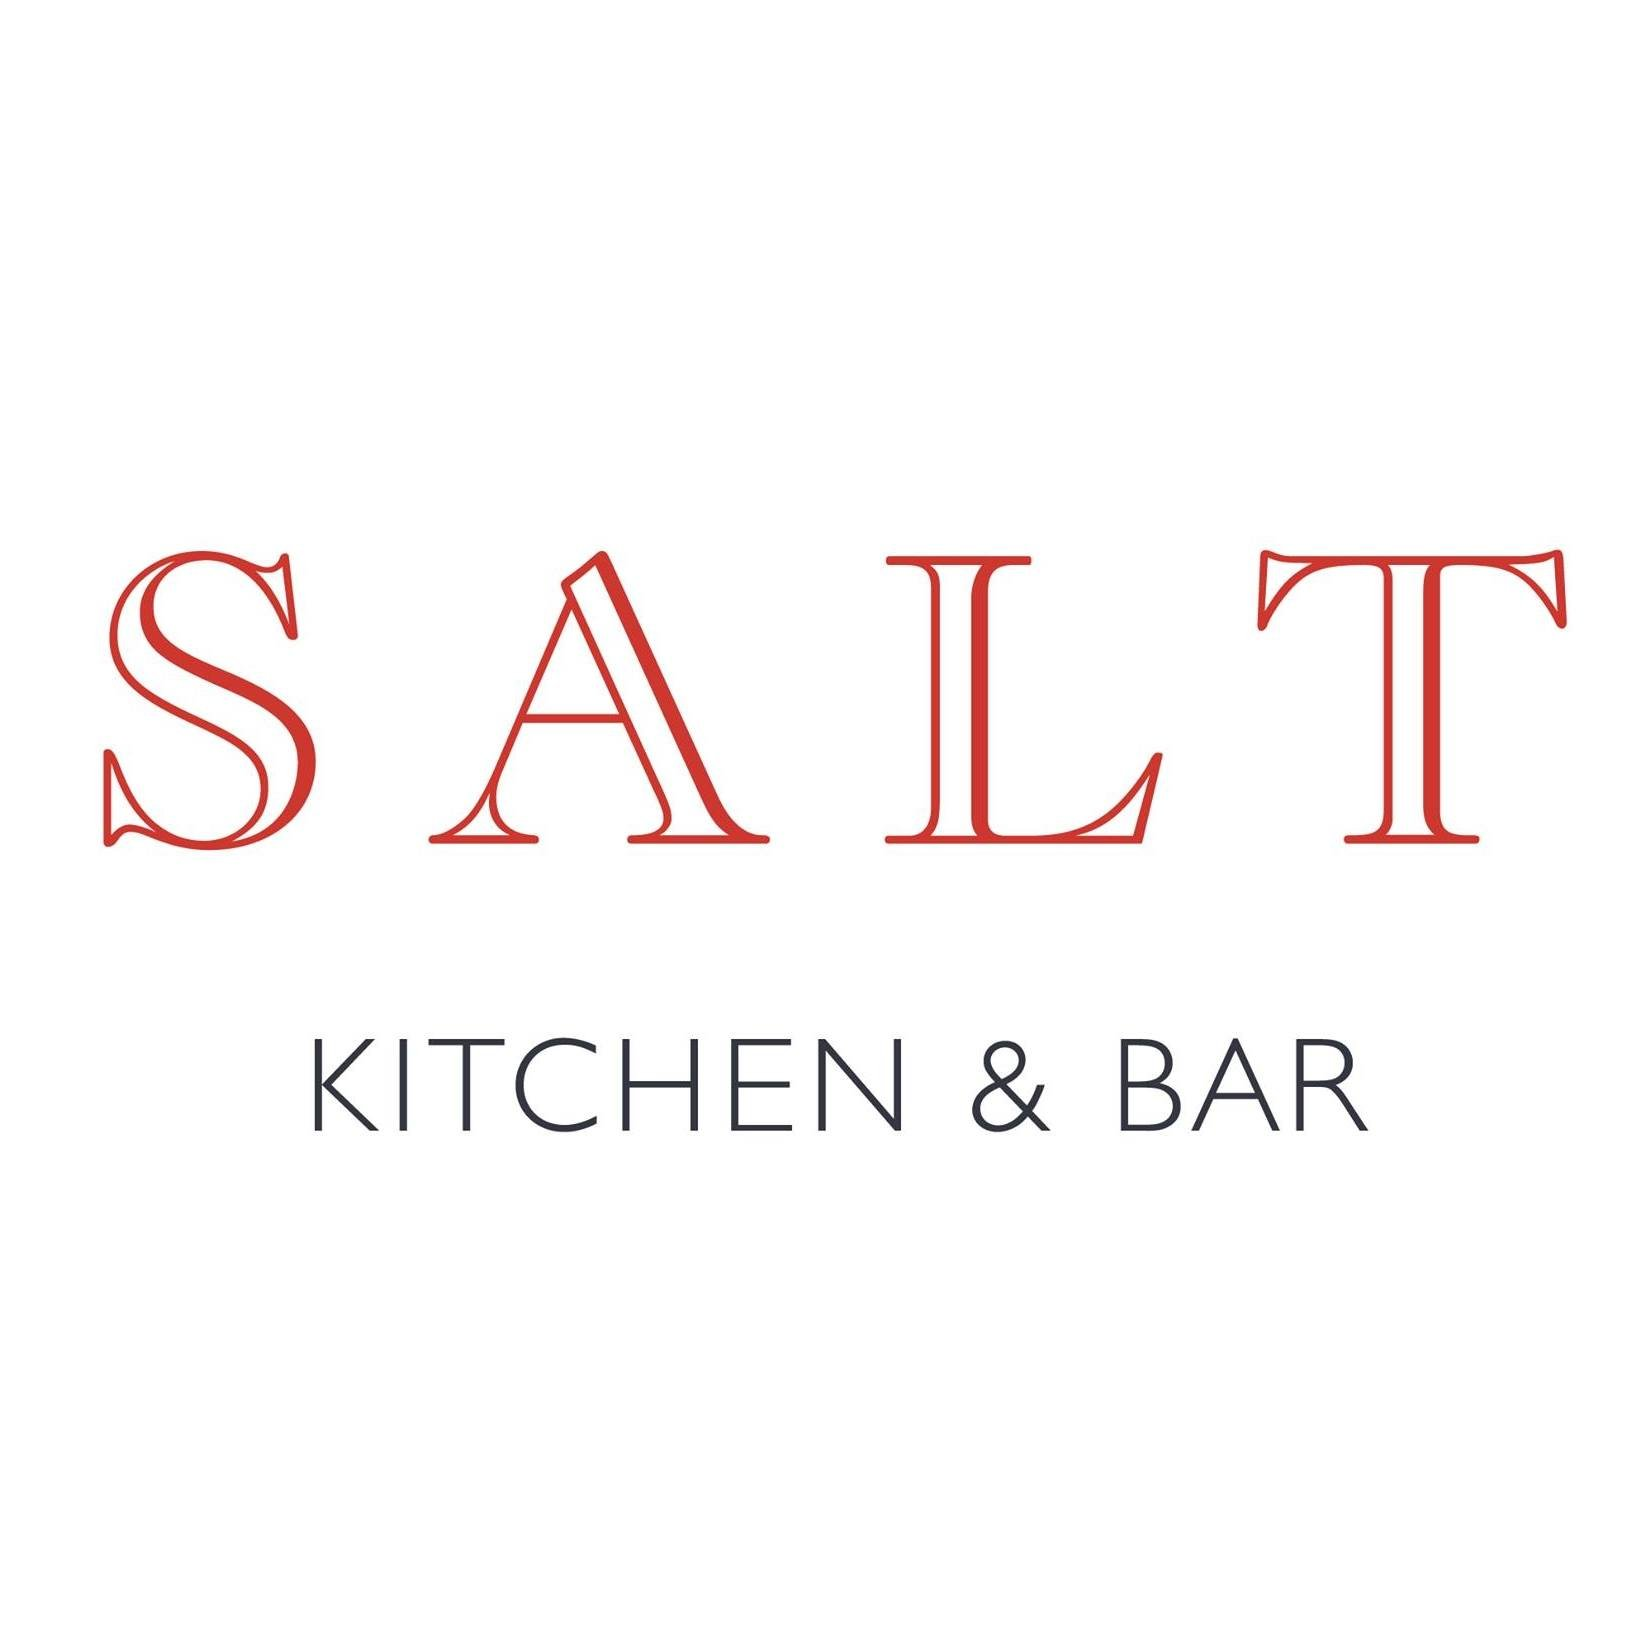 Salt - Kitchen & Bar (@SALT_KitchenBar) | Twitter